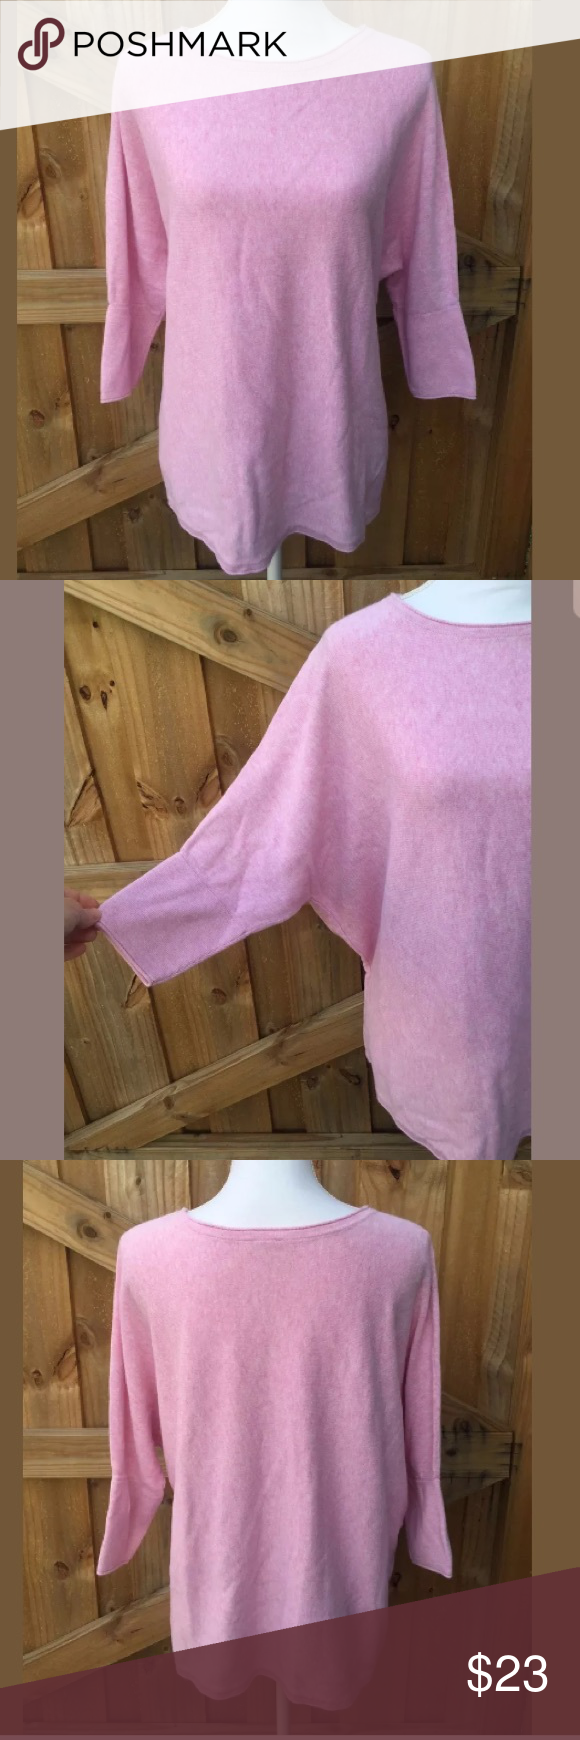 """Pure Jill Pink Oversized Sweater Size Medium This is a beautiful Pure Jill oversized Sweater Size Medium. Please see photos fore more details. ❤️ *This is oversized, not a regular medium*  Armpit to armpit-29"""" Length-26  If you have any questions please just ask. Thanks for looking! Pure Jill Sweaters Crew & Scoop Necks"""